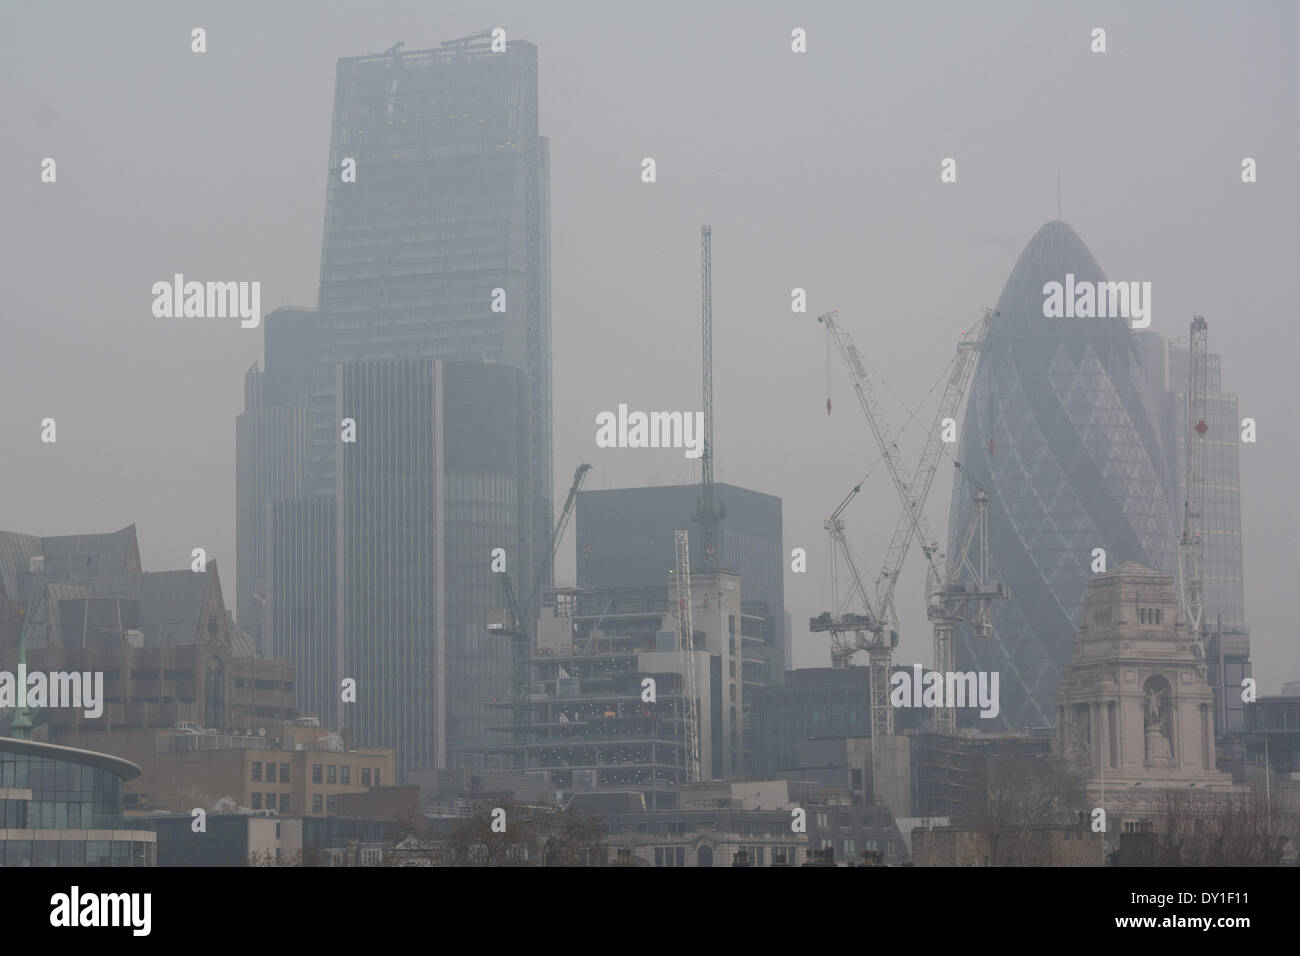 Iconic London buildings such as the Gherkin and the Cheesegrater fade behind a blanket of atmospheric pollution. - Stock Image